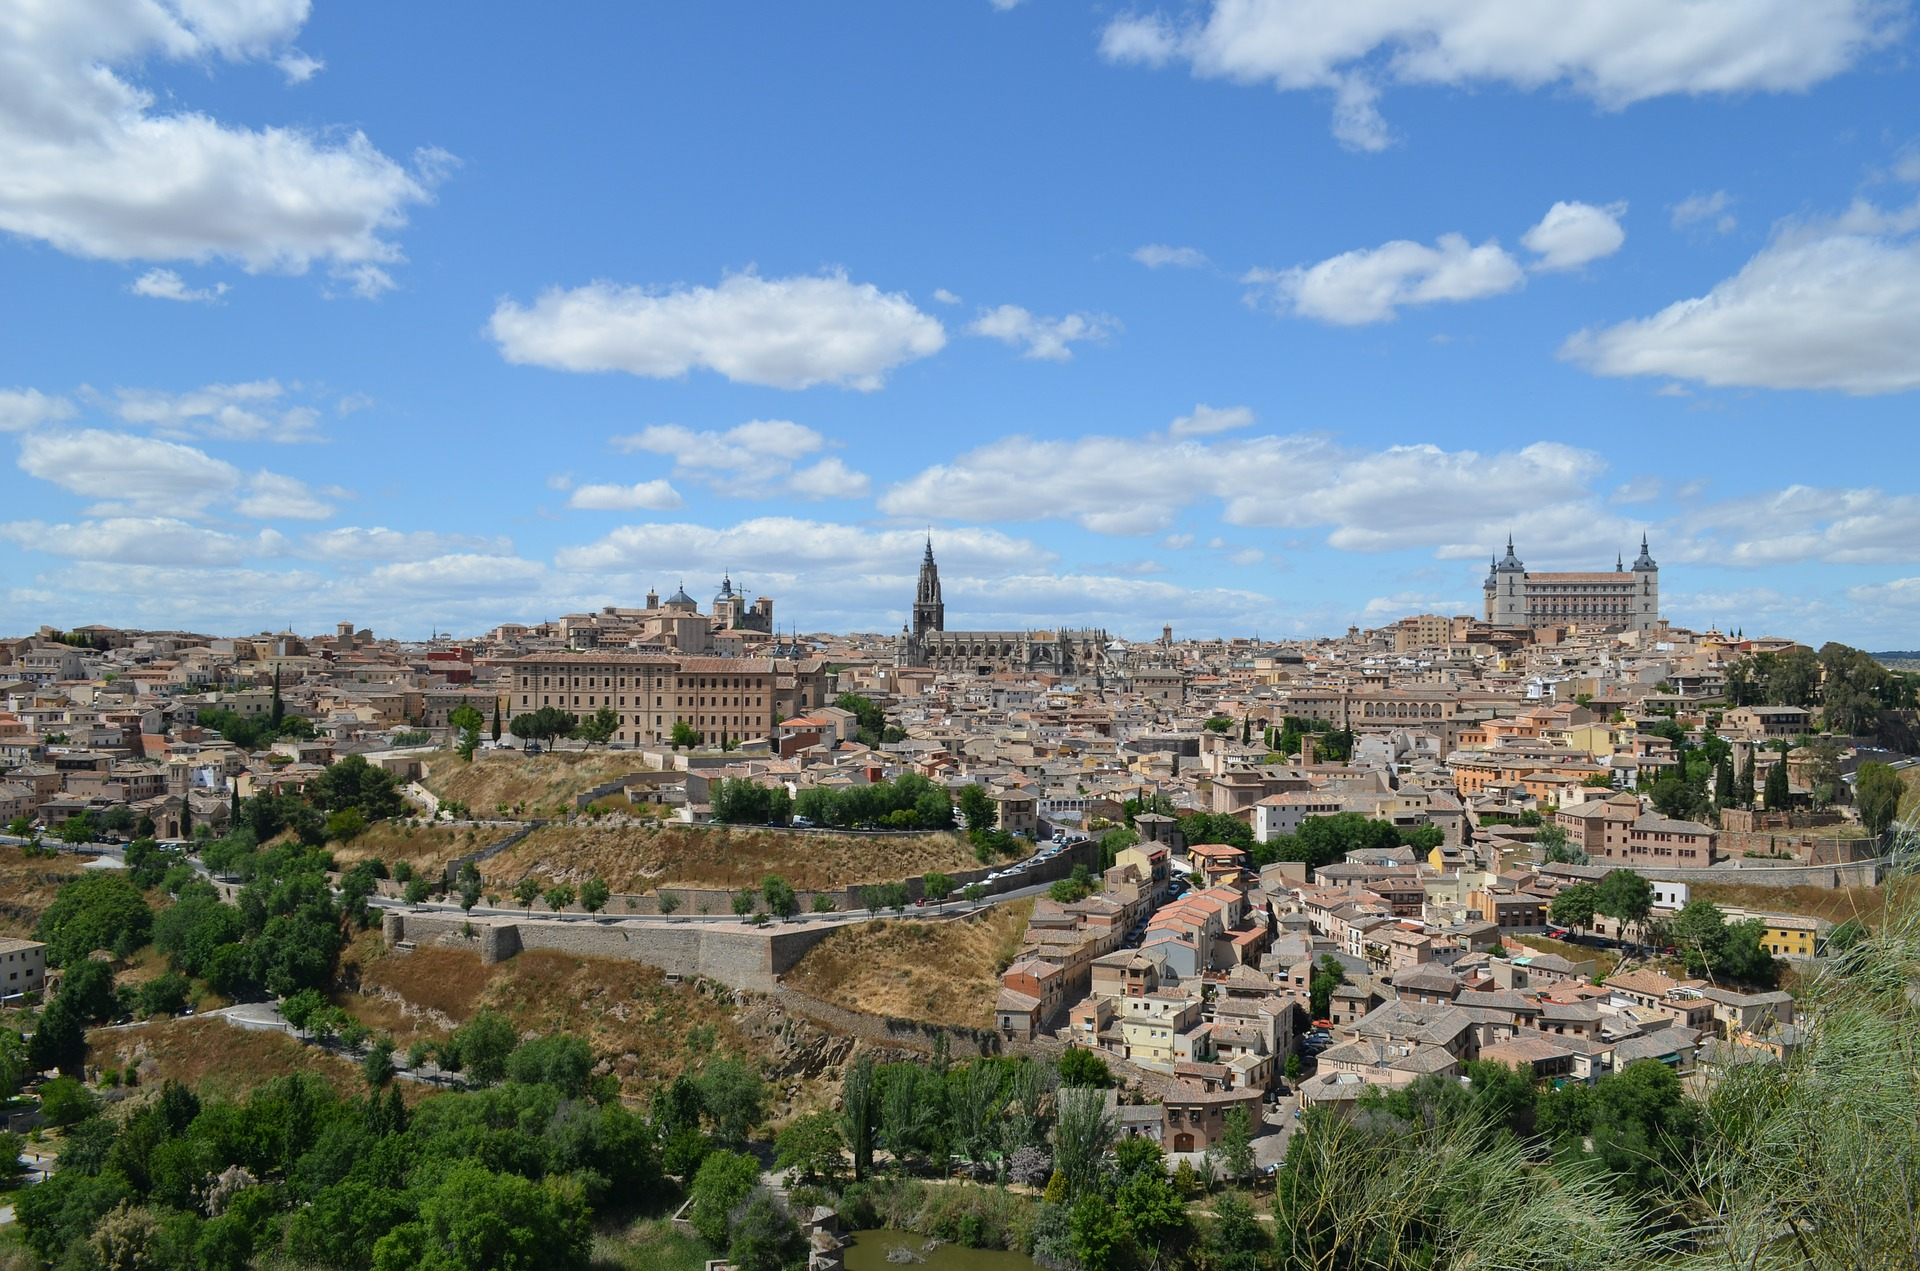 The final day of the program was spent touring Toledo, a UNESCO World Heritage Site and one of Spain's most ancient cities.